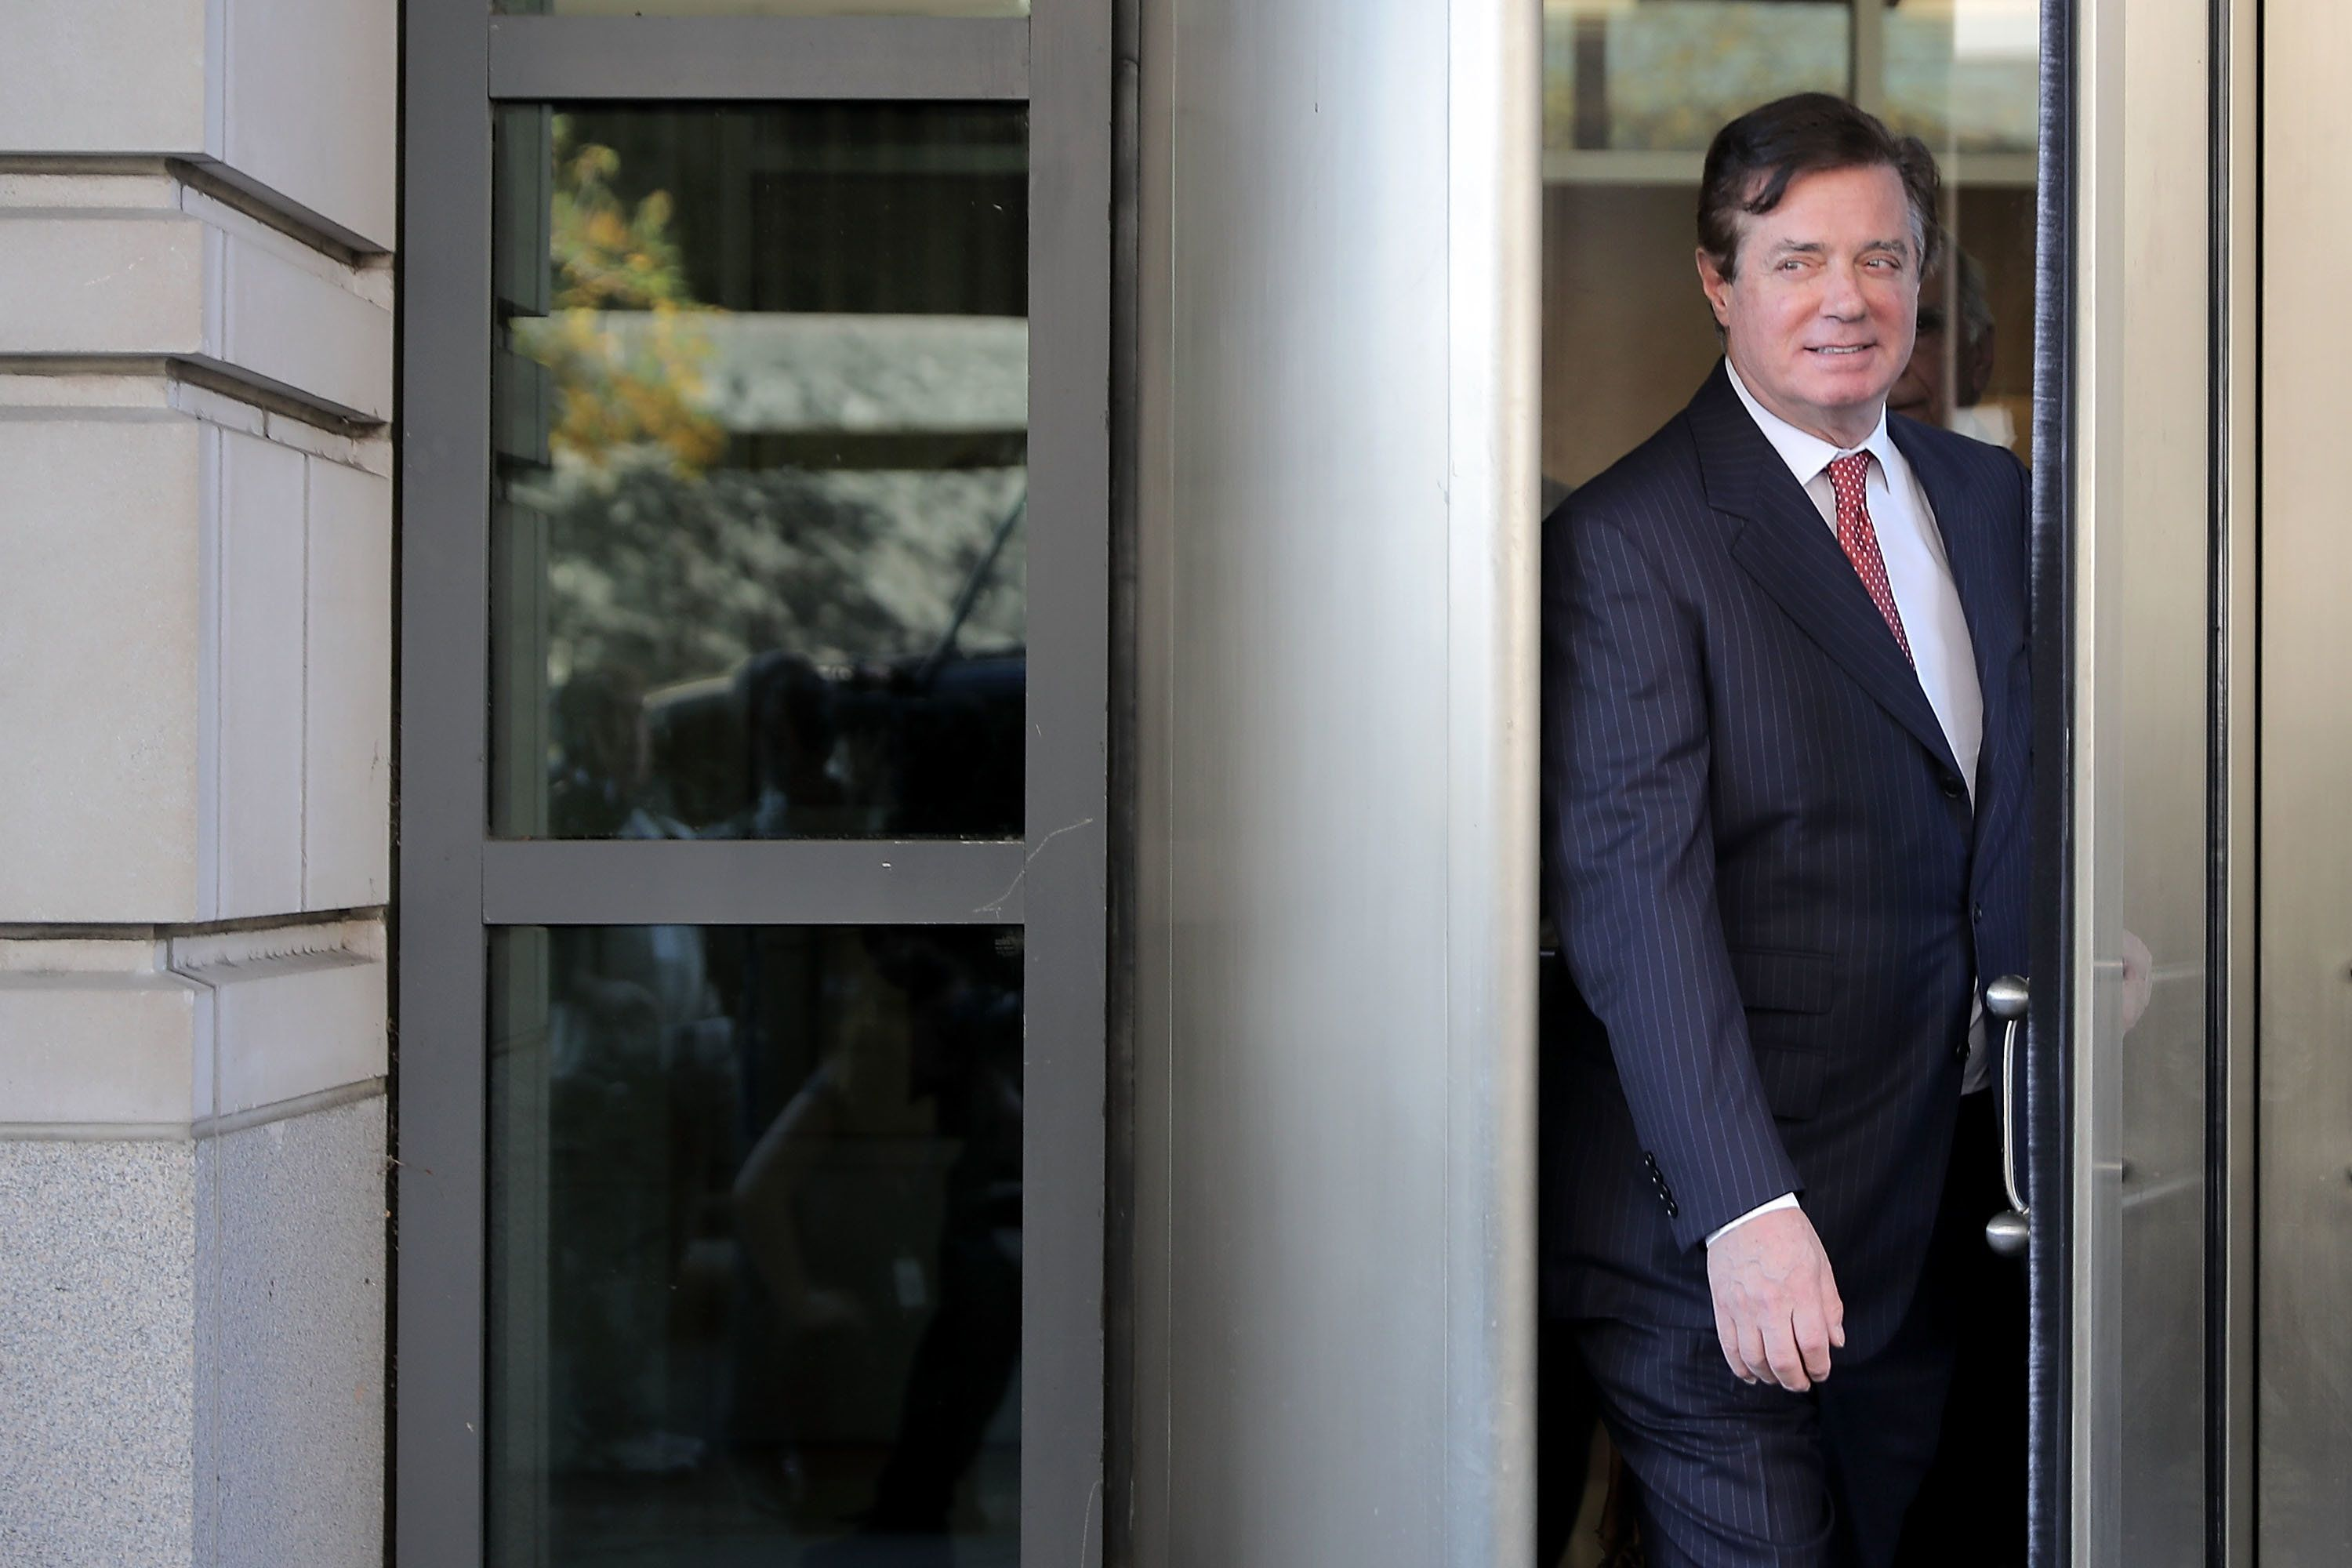 WASHINGTON, DC - NOVEMBER 02:  Former Trump campaign manager Paul Manafort leaves the Prettyman Federal Courthouse following a hearing November 2, 2017 in Washington, DC.  Manafort and his former business partner Richard Gates both pleaded not guilty Monday to a 12-charge indictment that included money laundering and conspiracy.  (Photo by Chip Somodevilla/Getty Images)